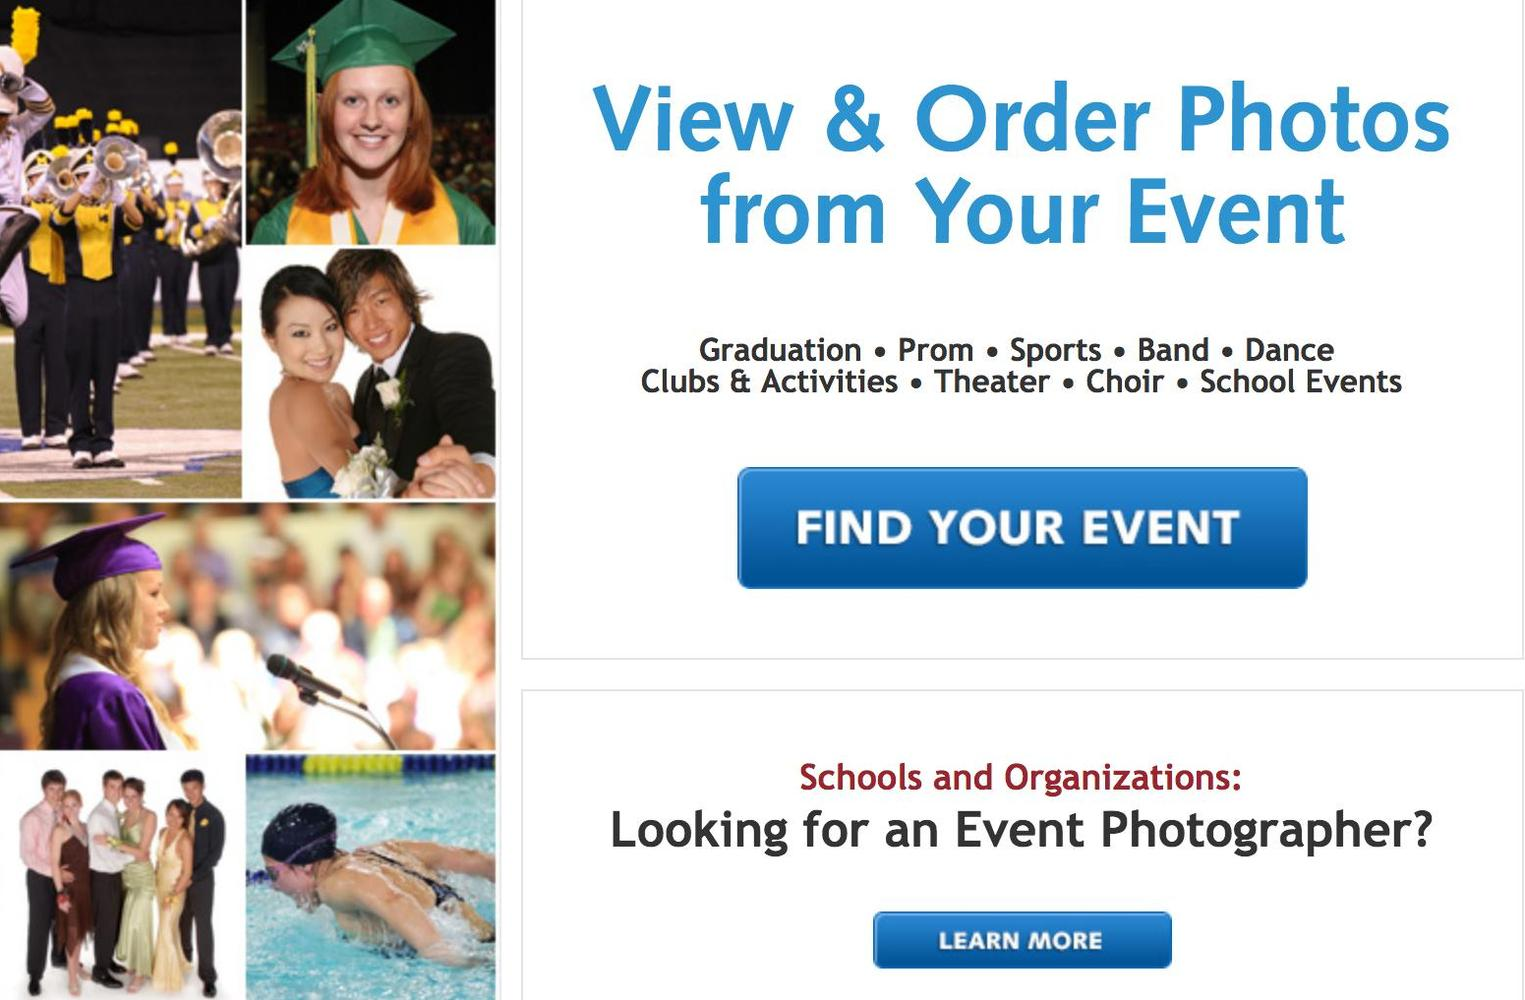 View & Order 8th Grade Promotion Photos